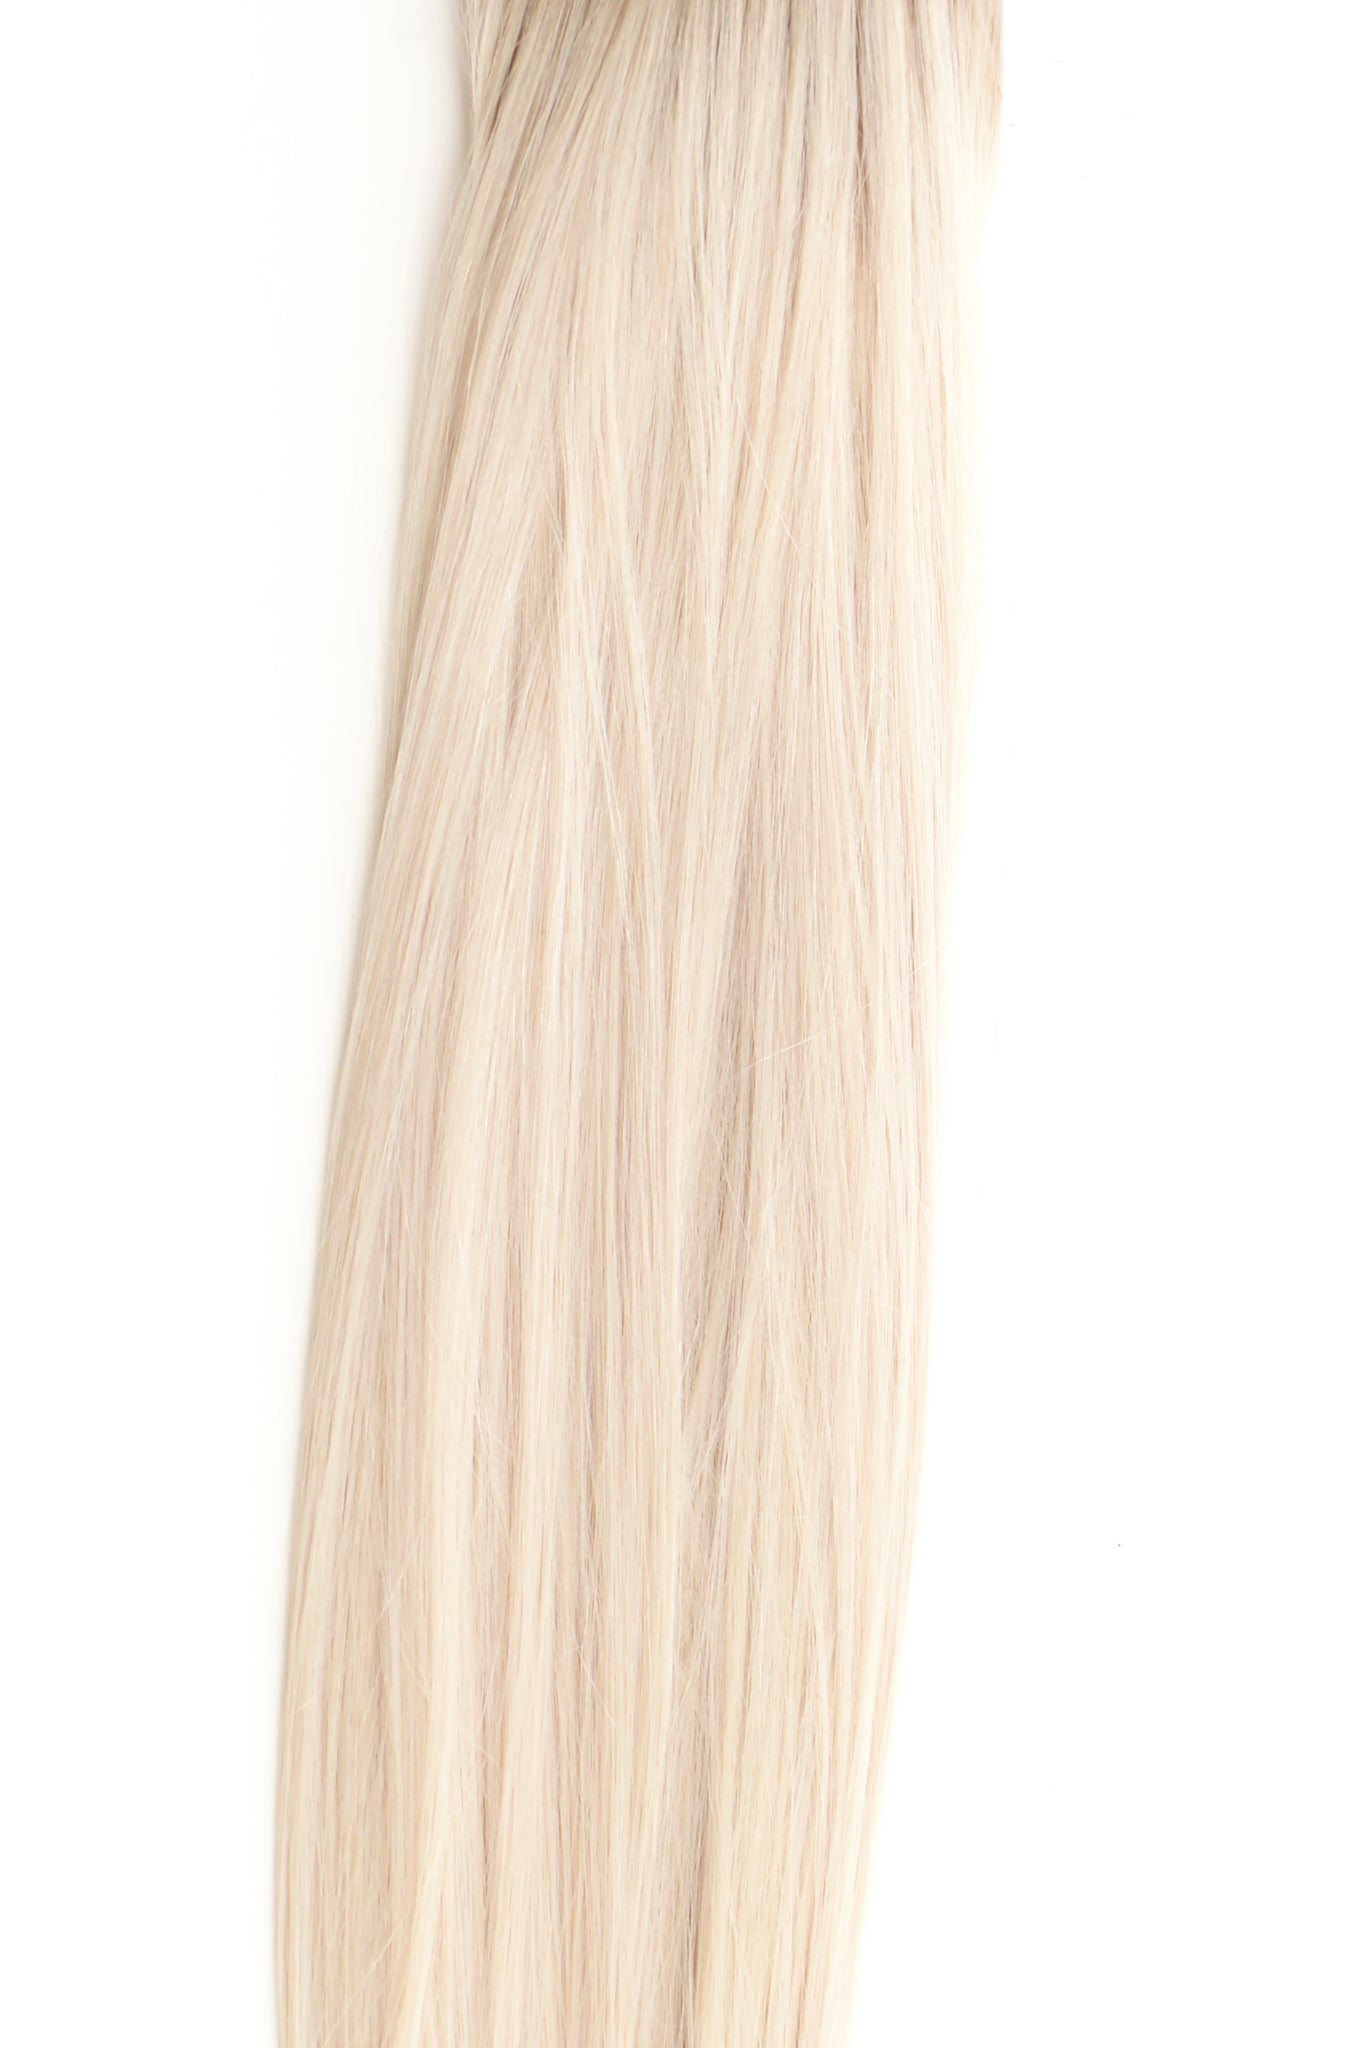 Beverly Hills Weft Hair Extension from Pryme Hair